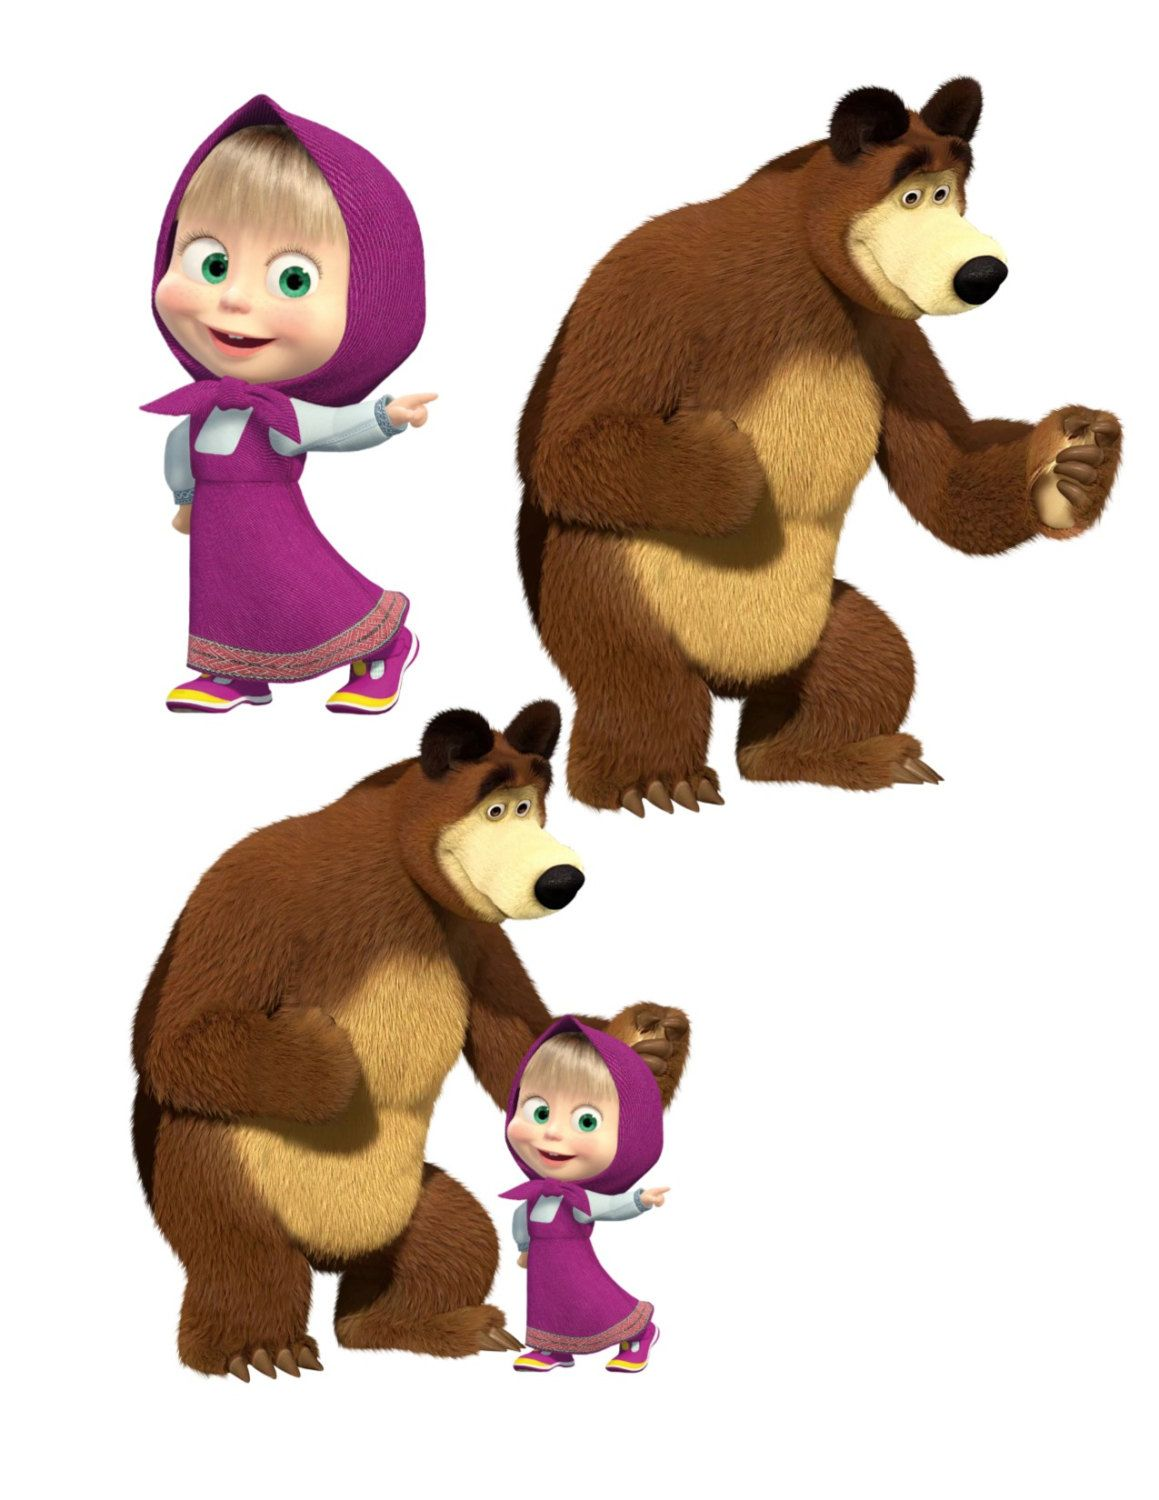 Masha Image, Masha Cutout, Masha and the Bear Image, Masha.